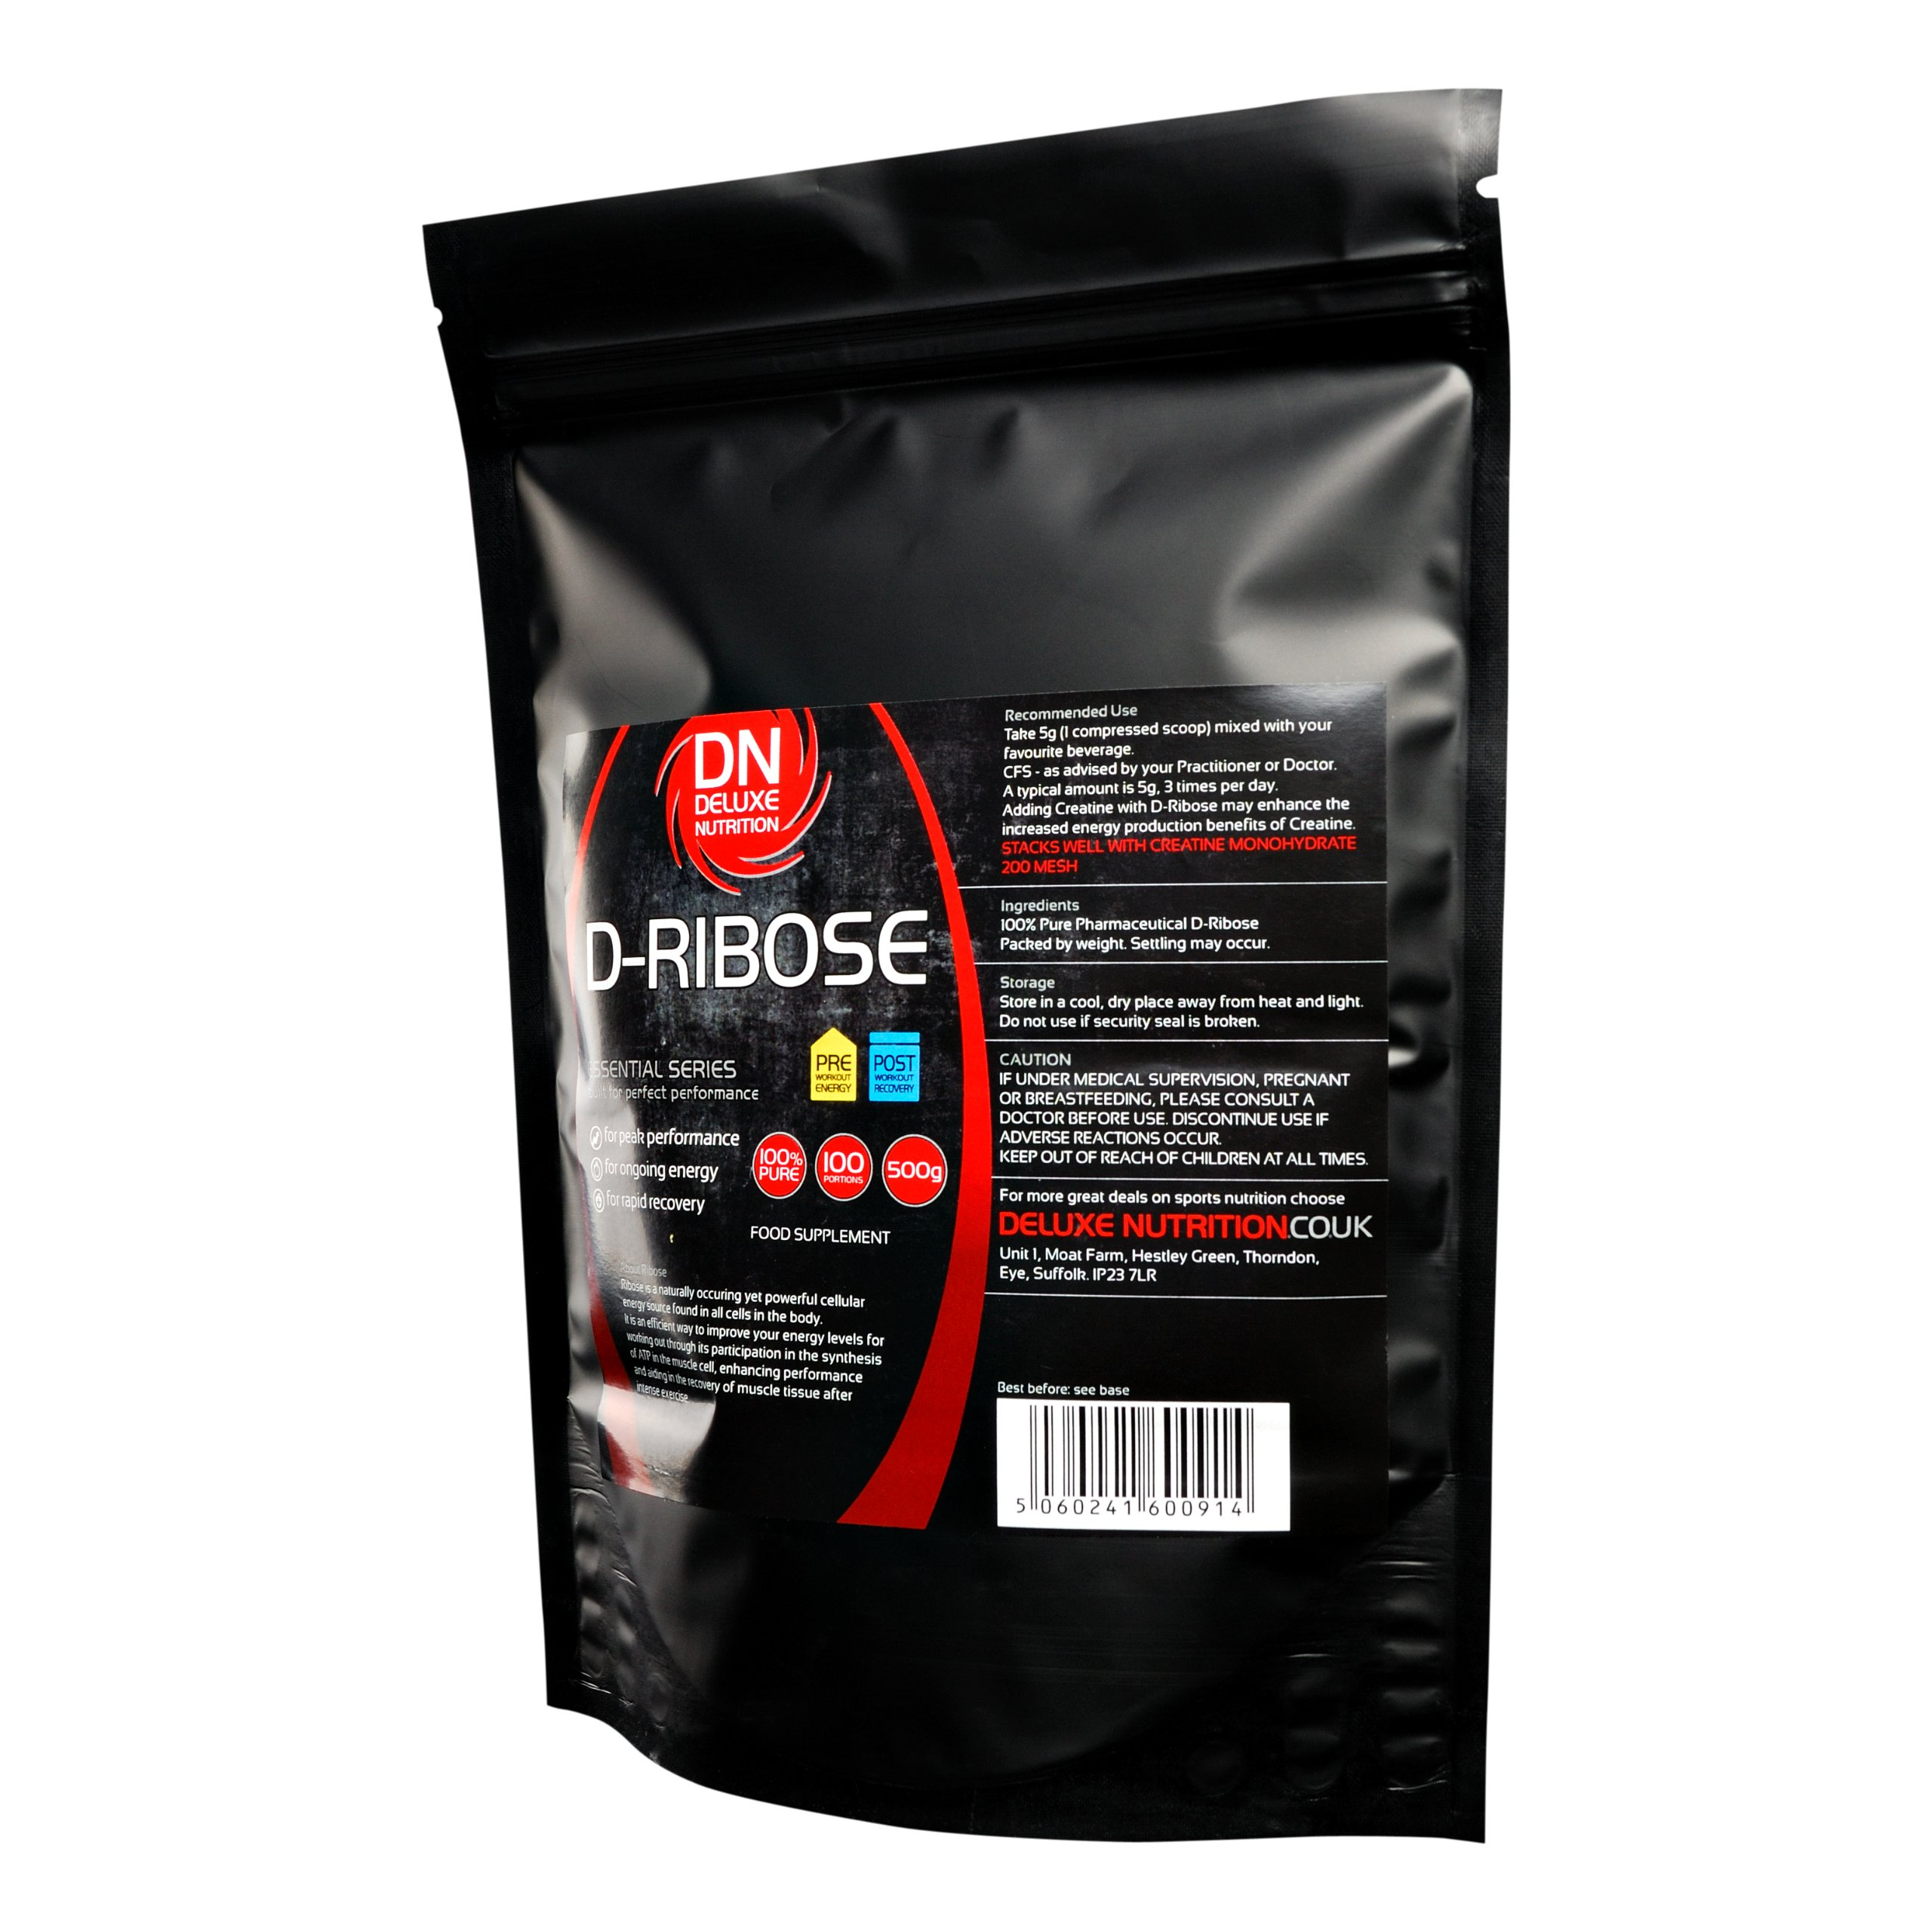 Deluxe Nutrition D-Ribose 1kg Powder Plus 250g FREE Worth Over ?15.00 (Total weight 1.250kg)